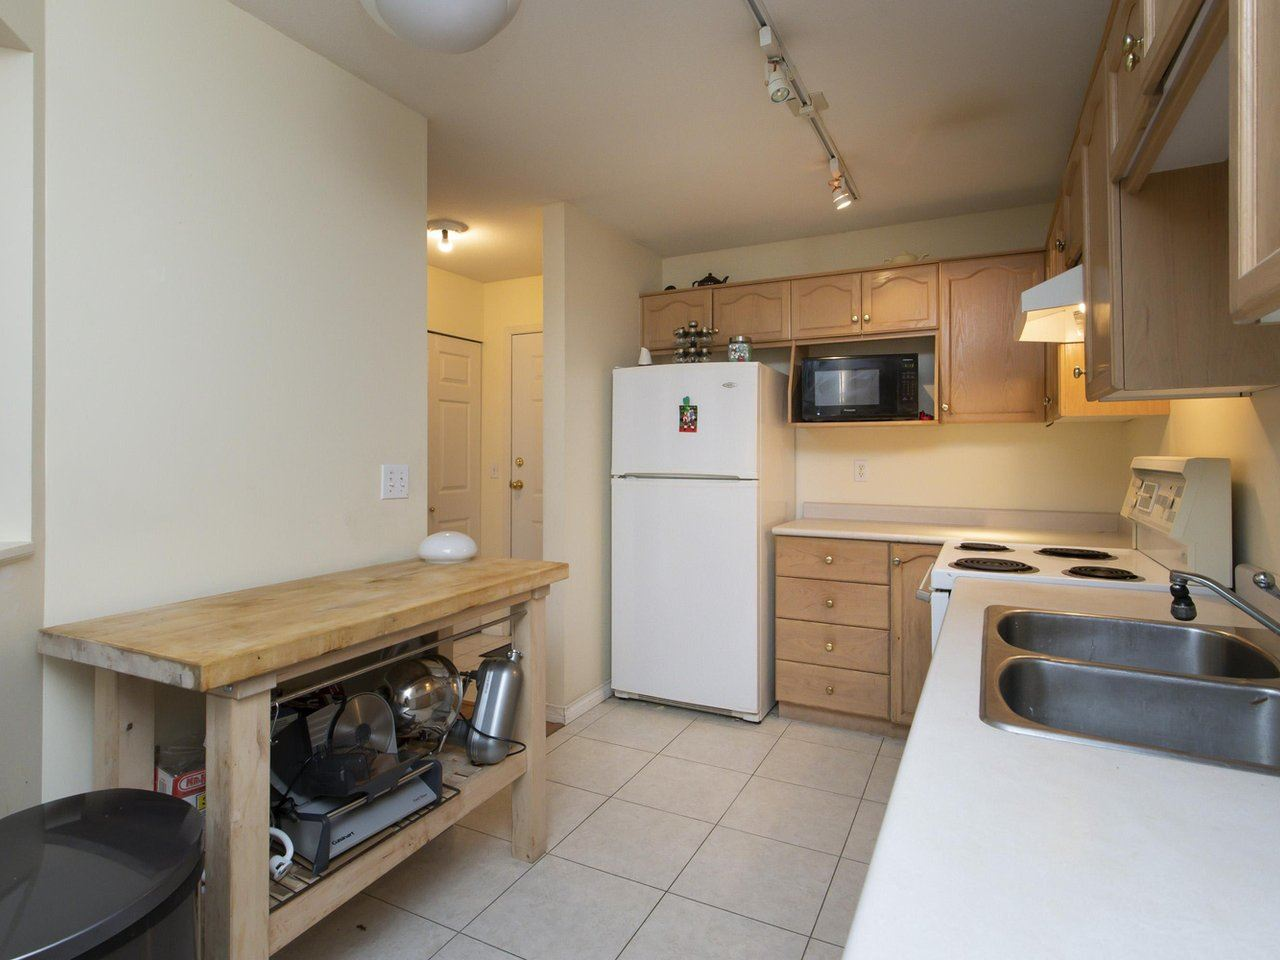 301 2615 JANE STREET - Central Pt Coquitlam Apartment/Condo for sale, 1 Bedroom (R2447351) - #9